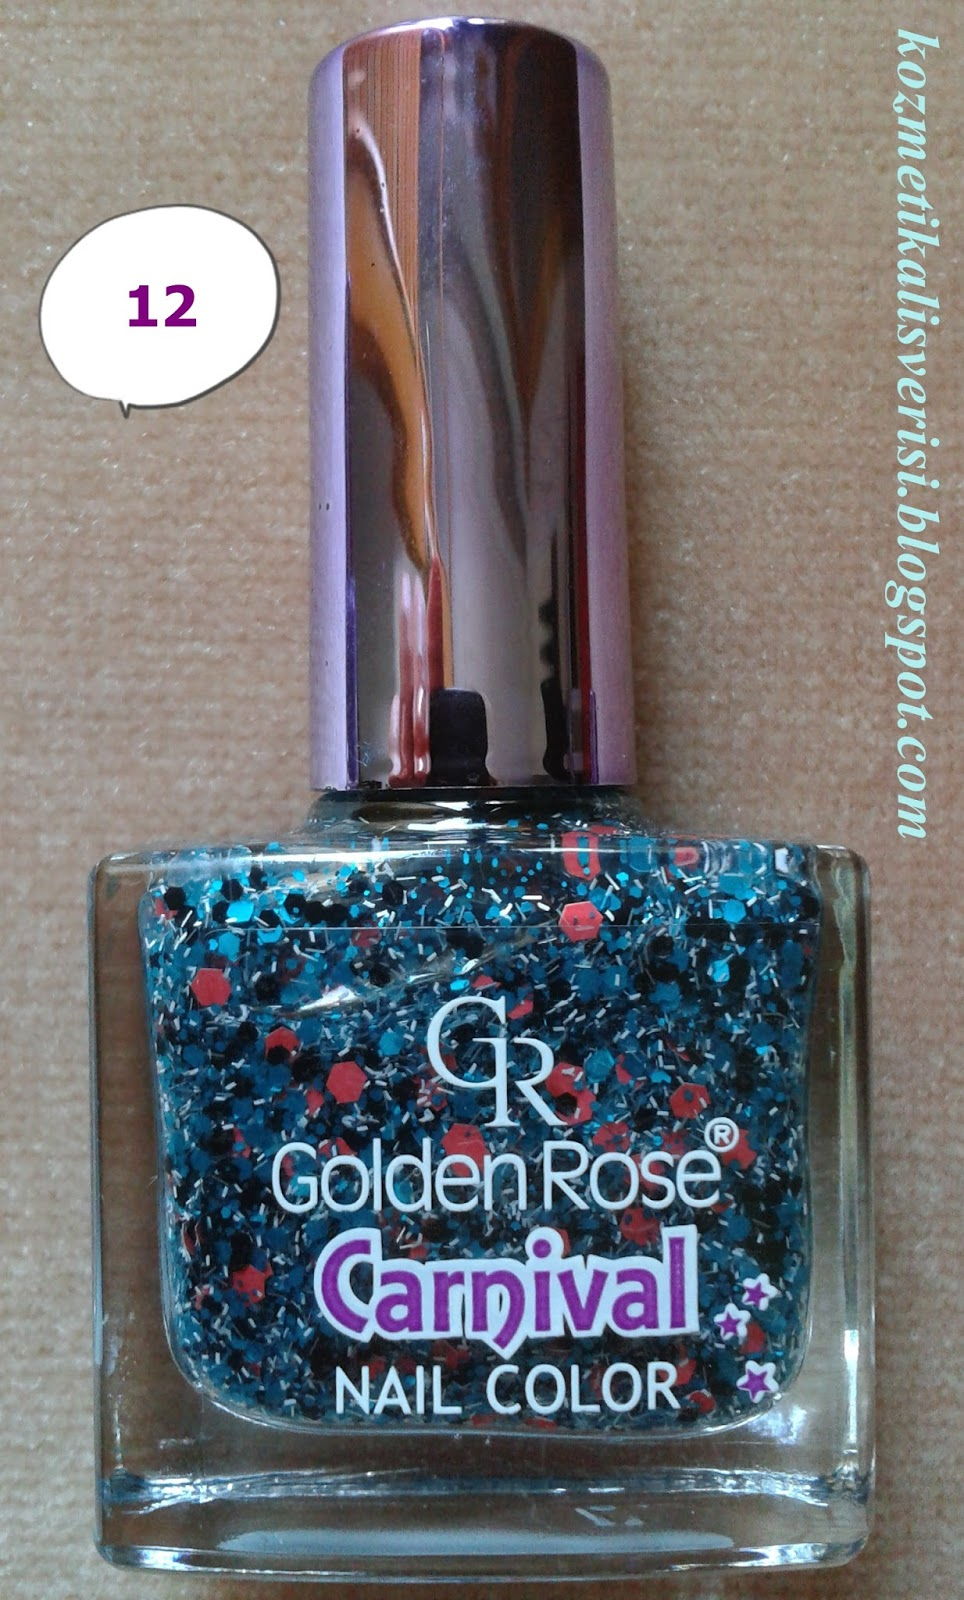 Golden Rose Carnival Nail Color 12